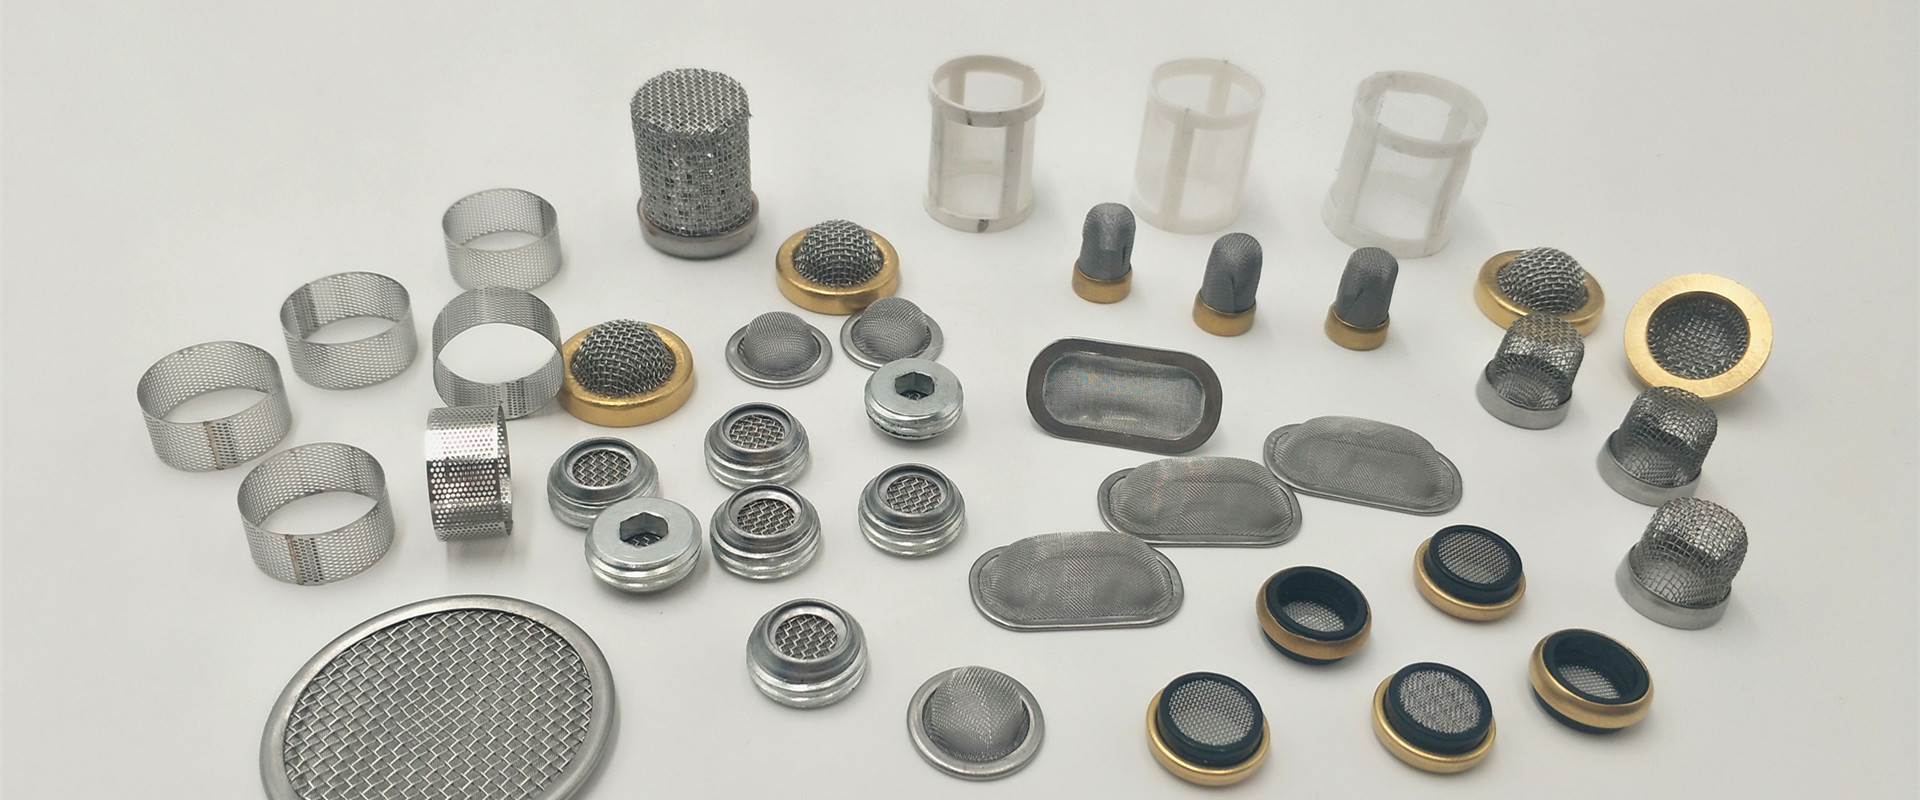 Featured products:High pressure filter discs,hydraulic filter elements,fuel injector filters,diesel oil filter elements,hydraulic lubrication filters.